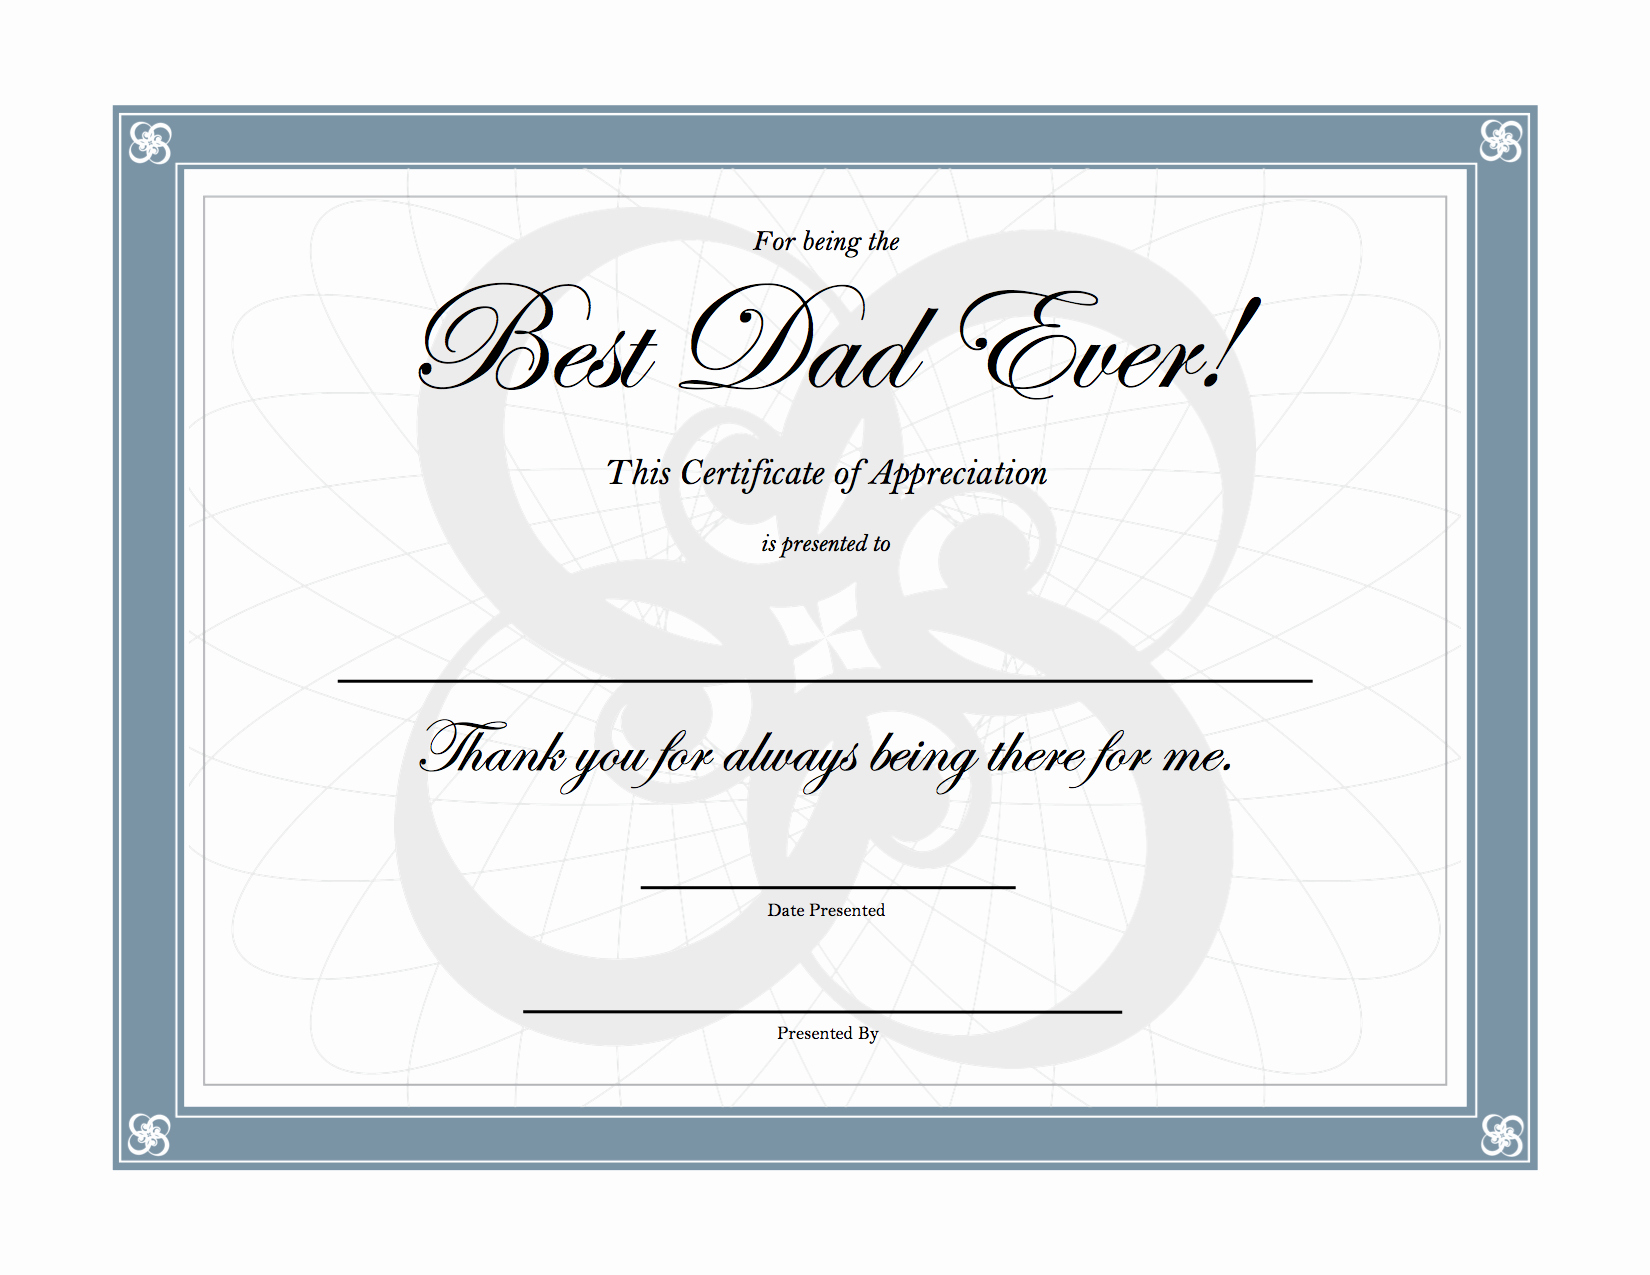 Best Dad Award Printable Unique Best Dad Ever Certificate Printable